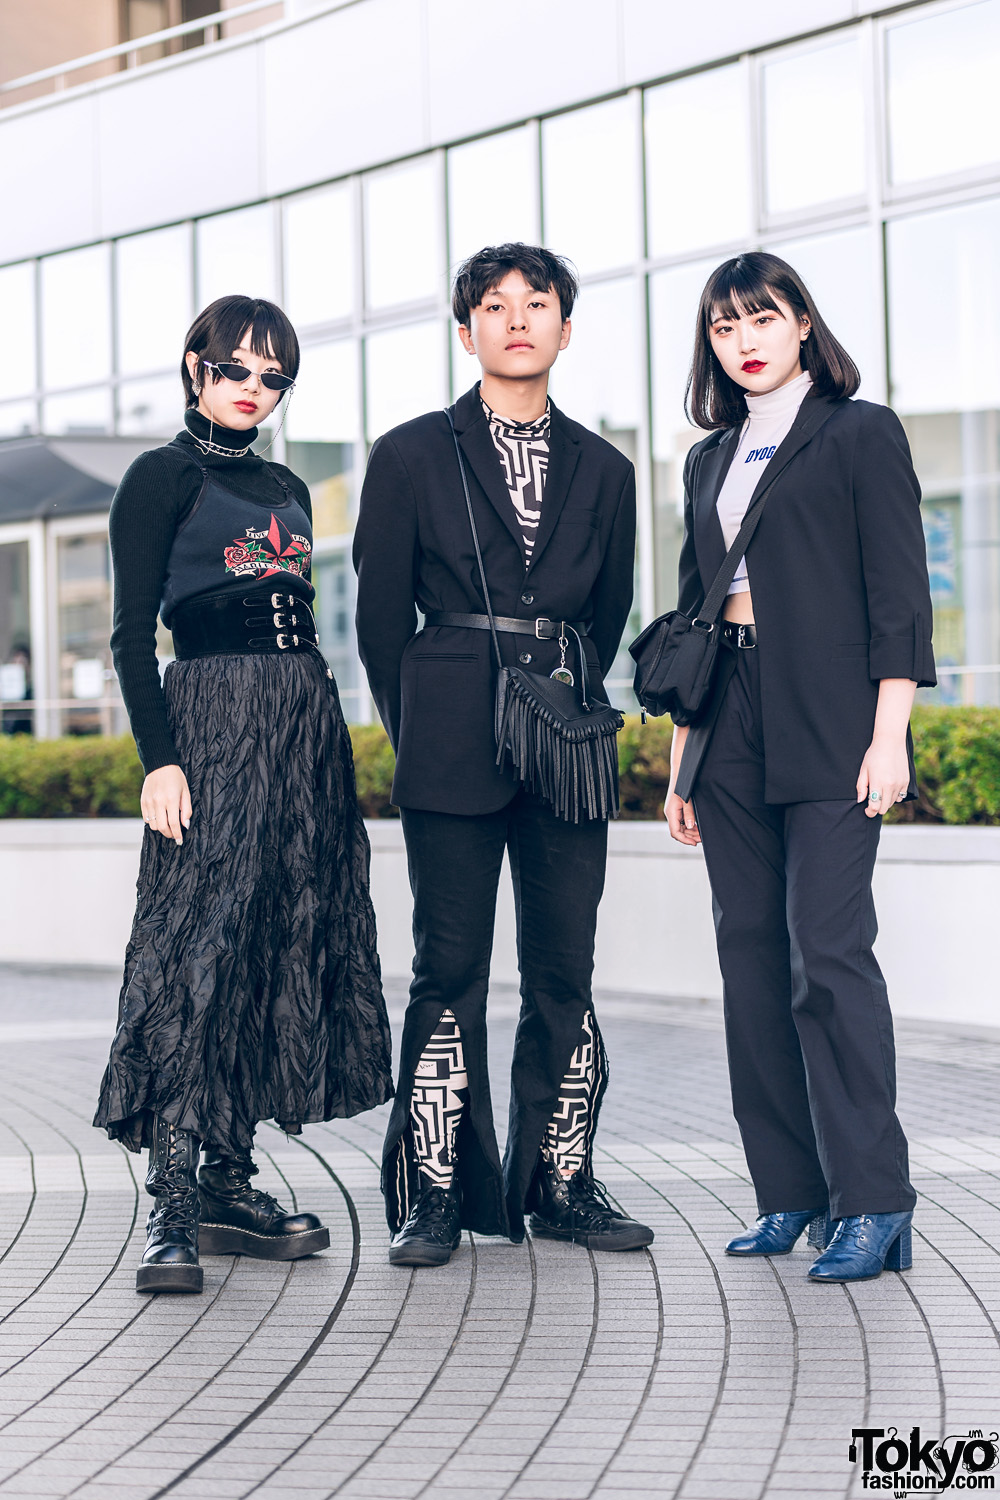 Tokyo Monochrome Streetwear Styles w/ Cat Eye Sunglasses, Belted Corset, Harley Davidson, DYOG Cropped Top, Gallerie, Zara, H&M, Bershka, Forever21, Demonia & Converse